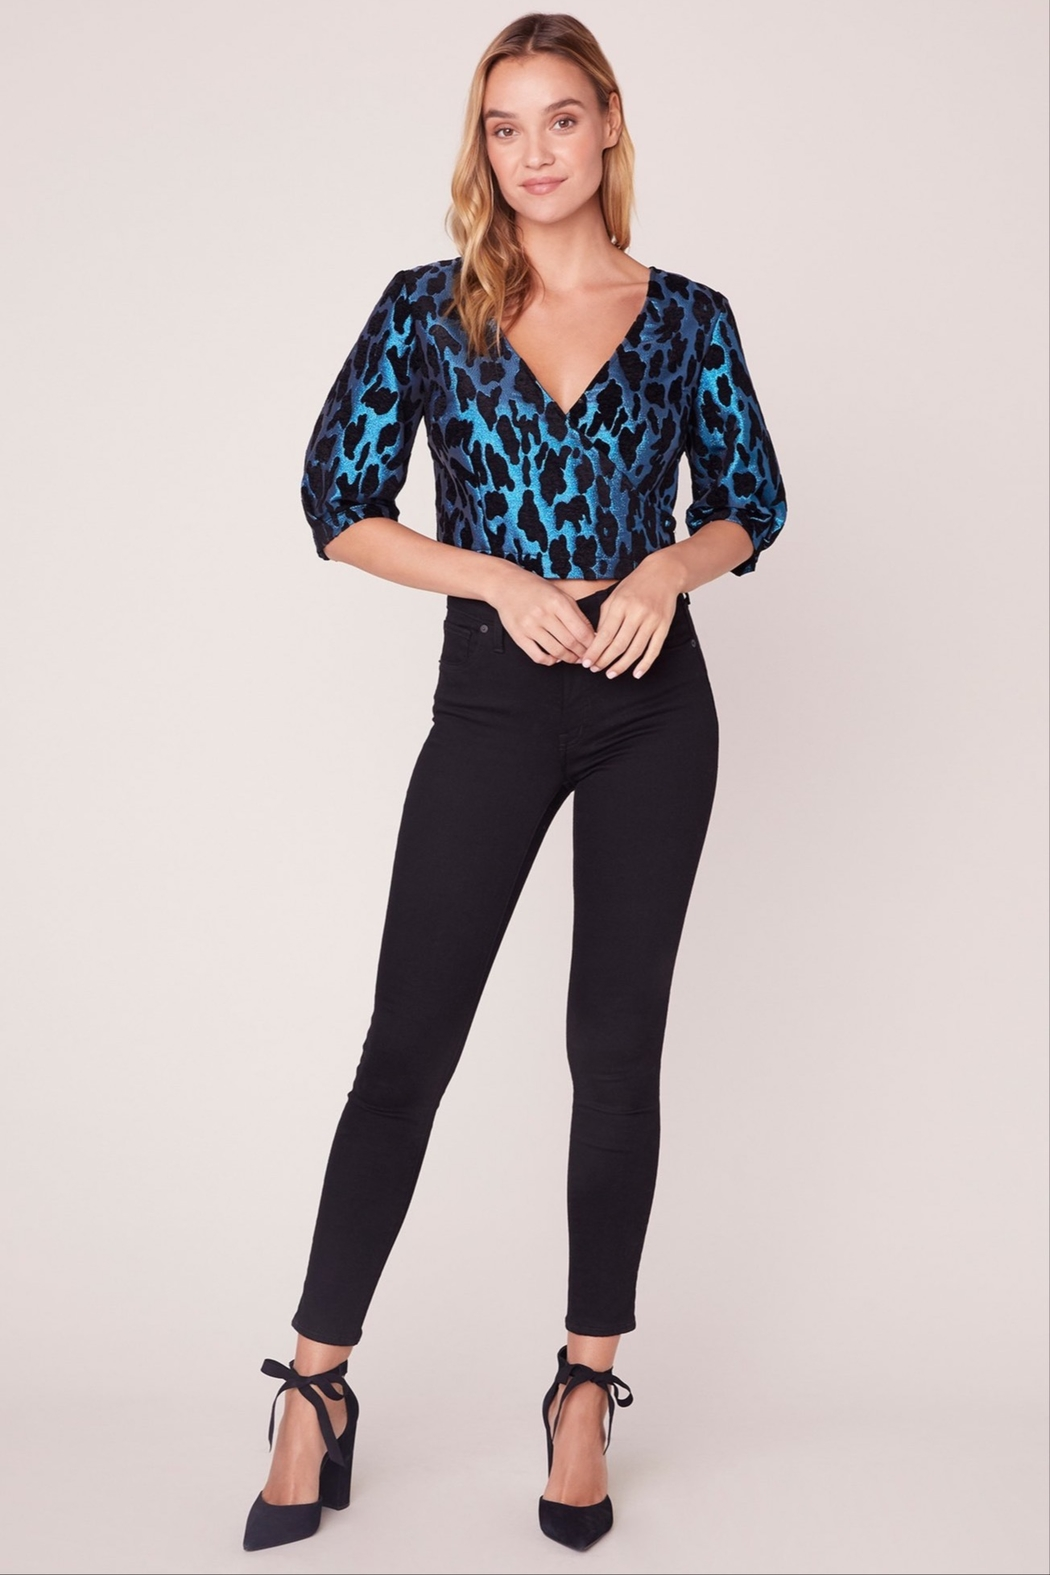 BB Dakota Leopard Metallic Top - Main Image